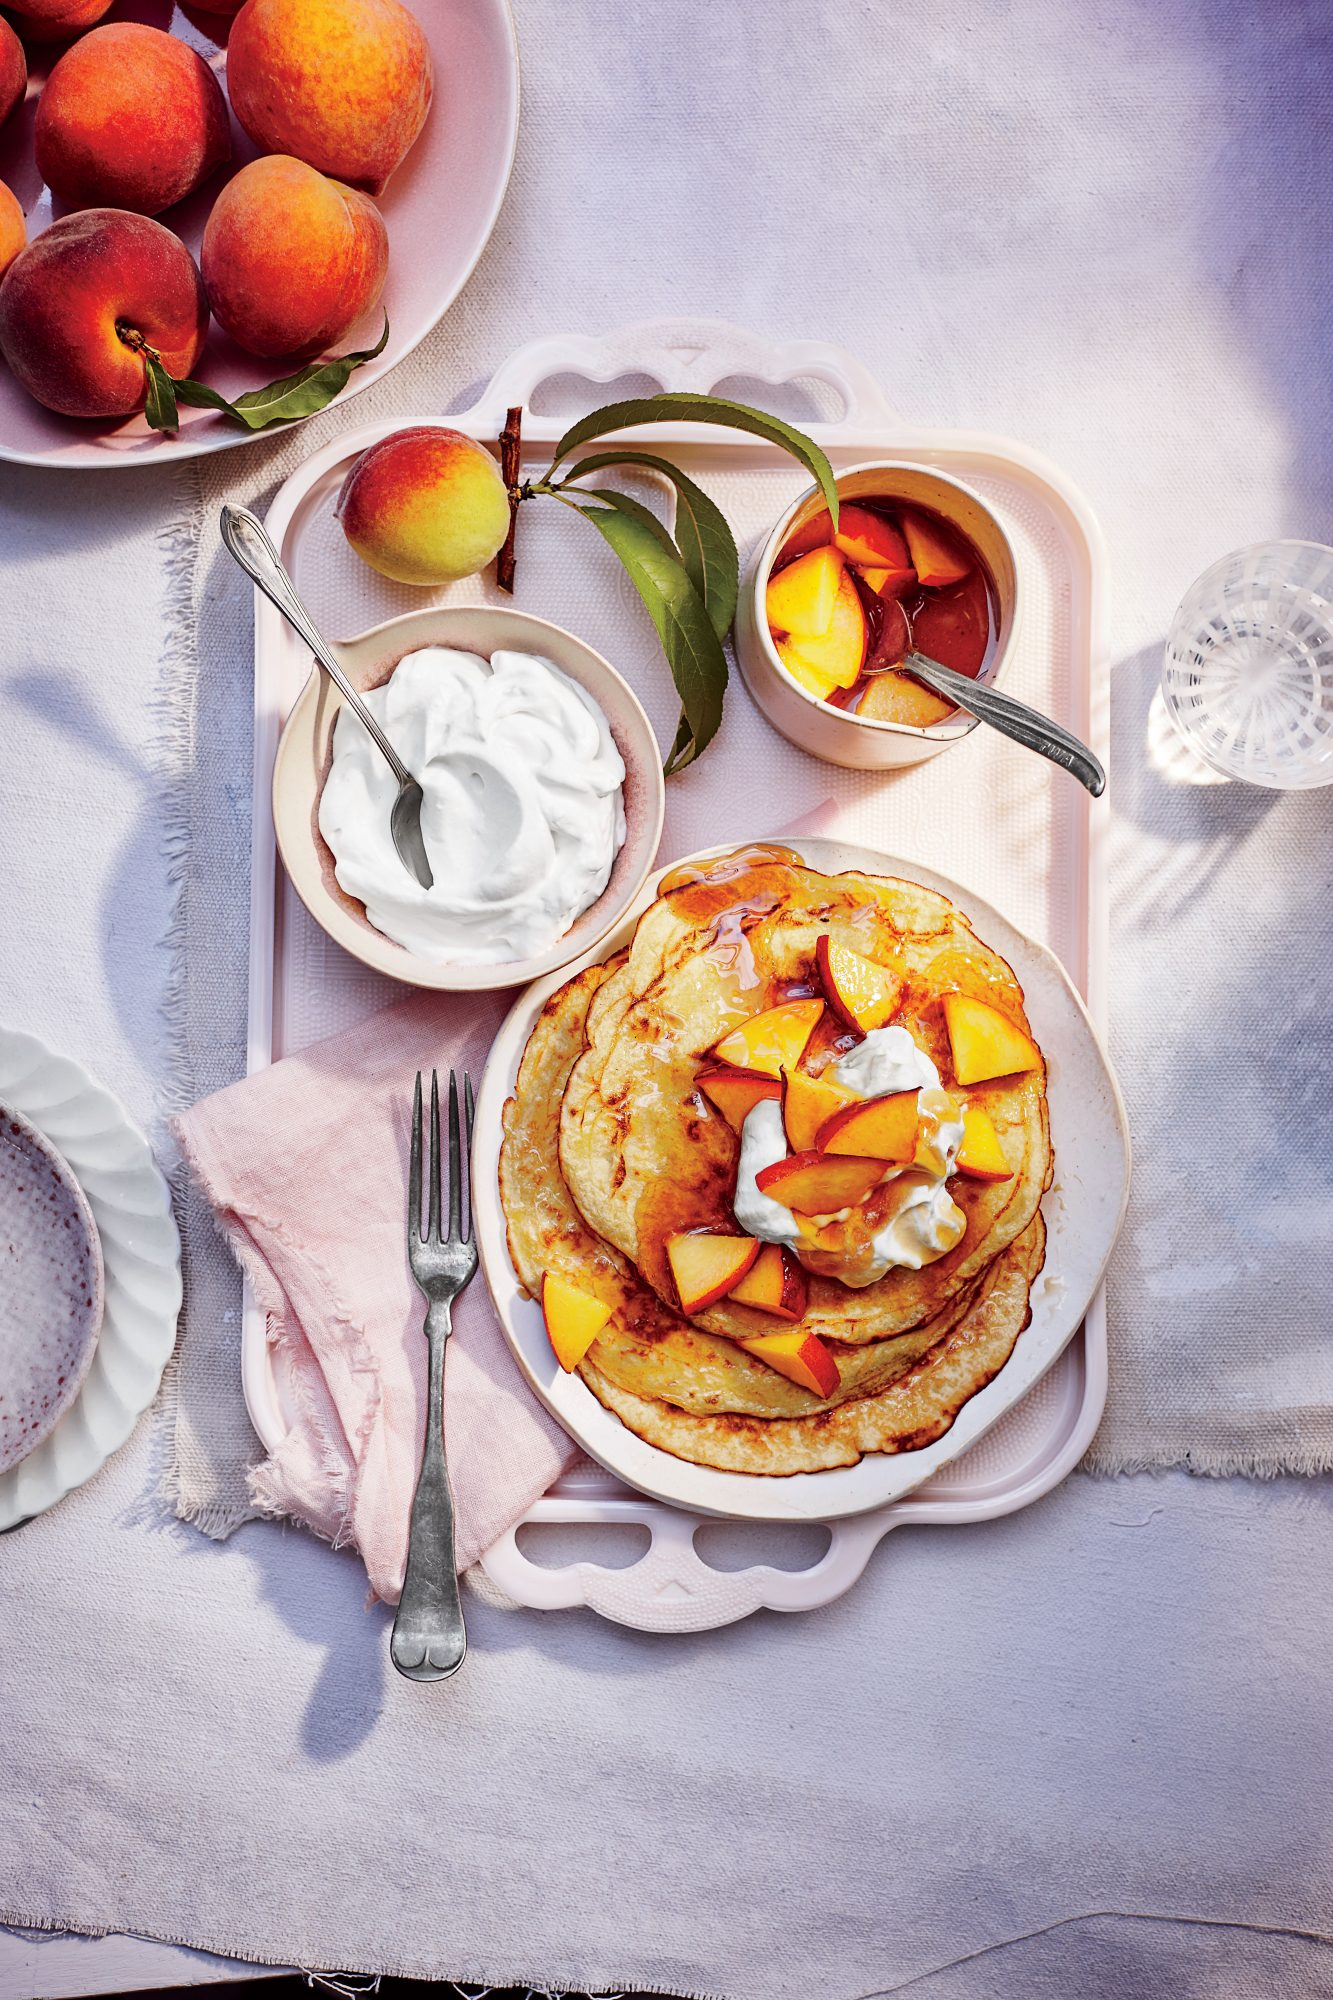 Peaches-and-Cream Pancakes Recipe